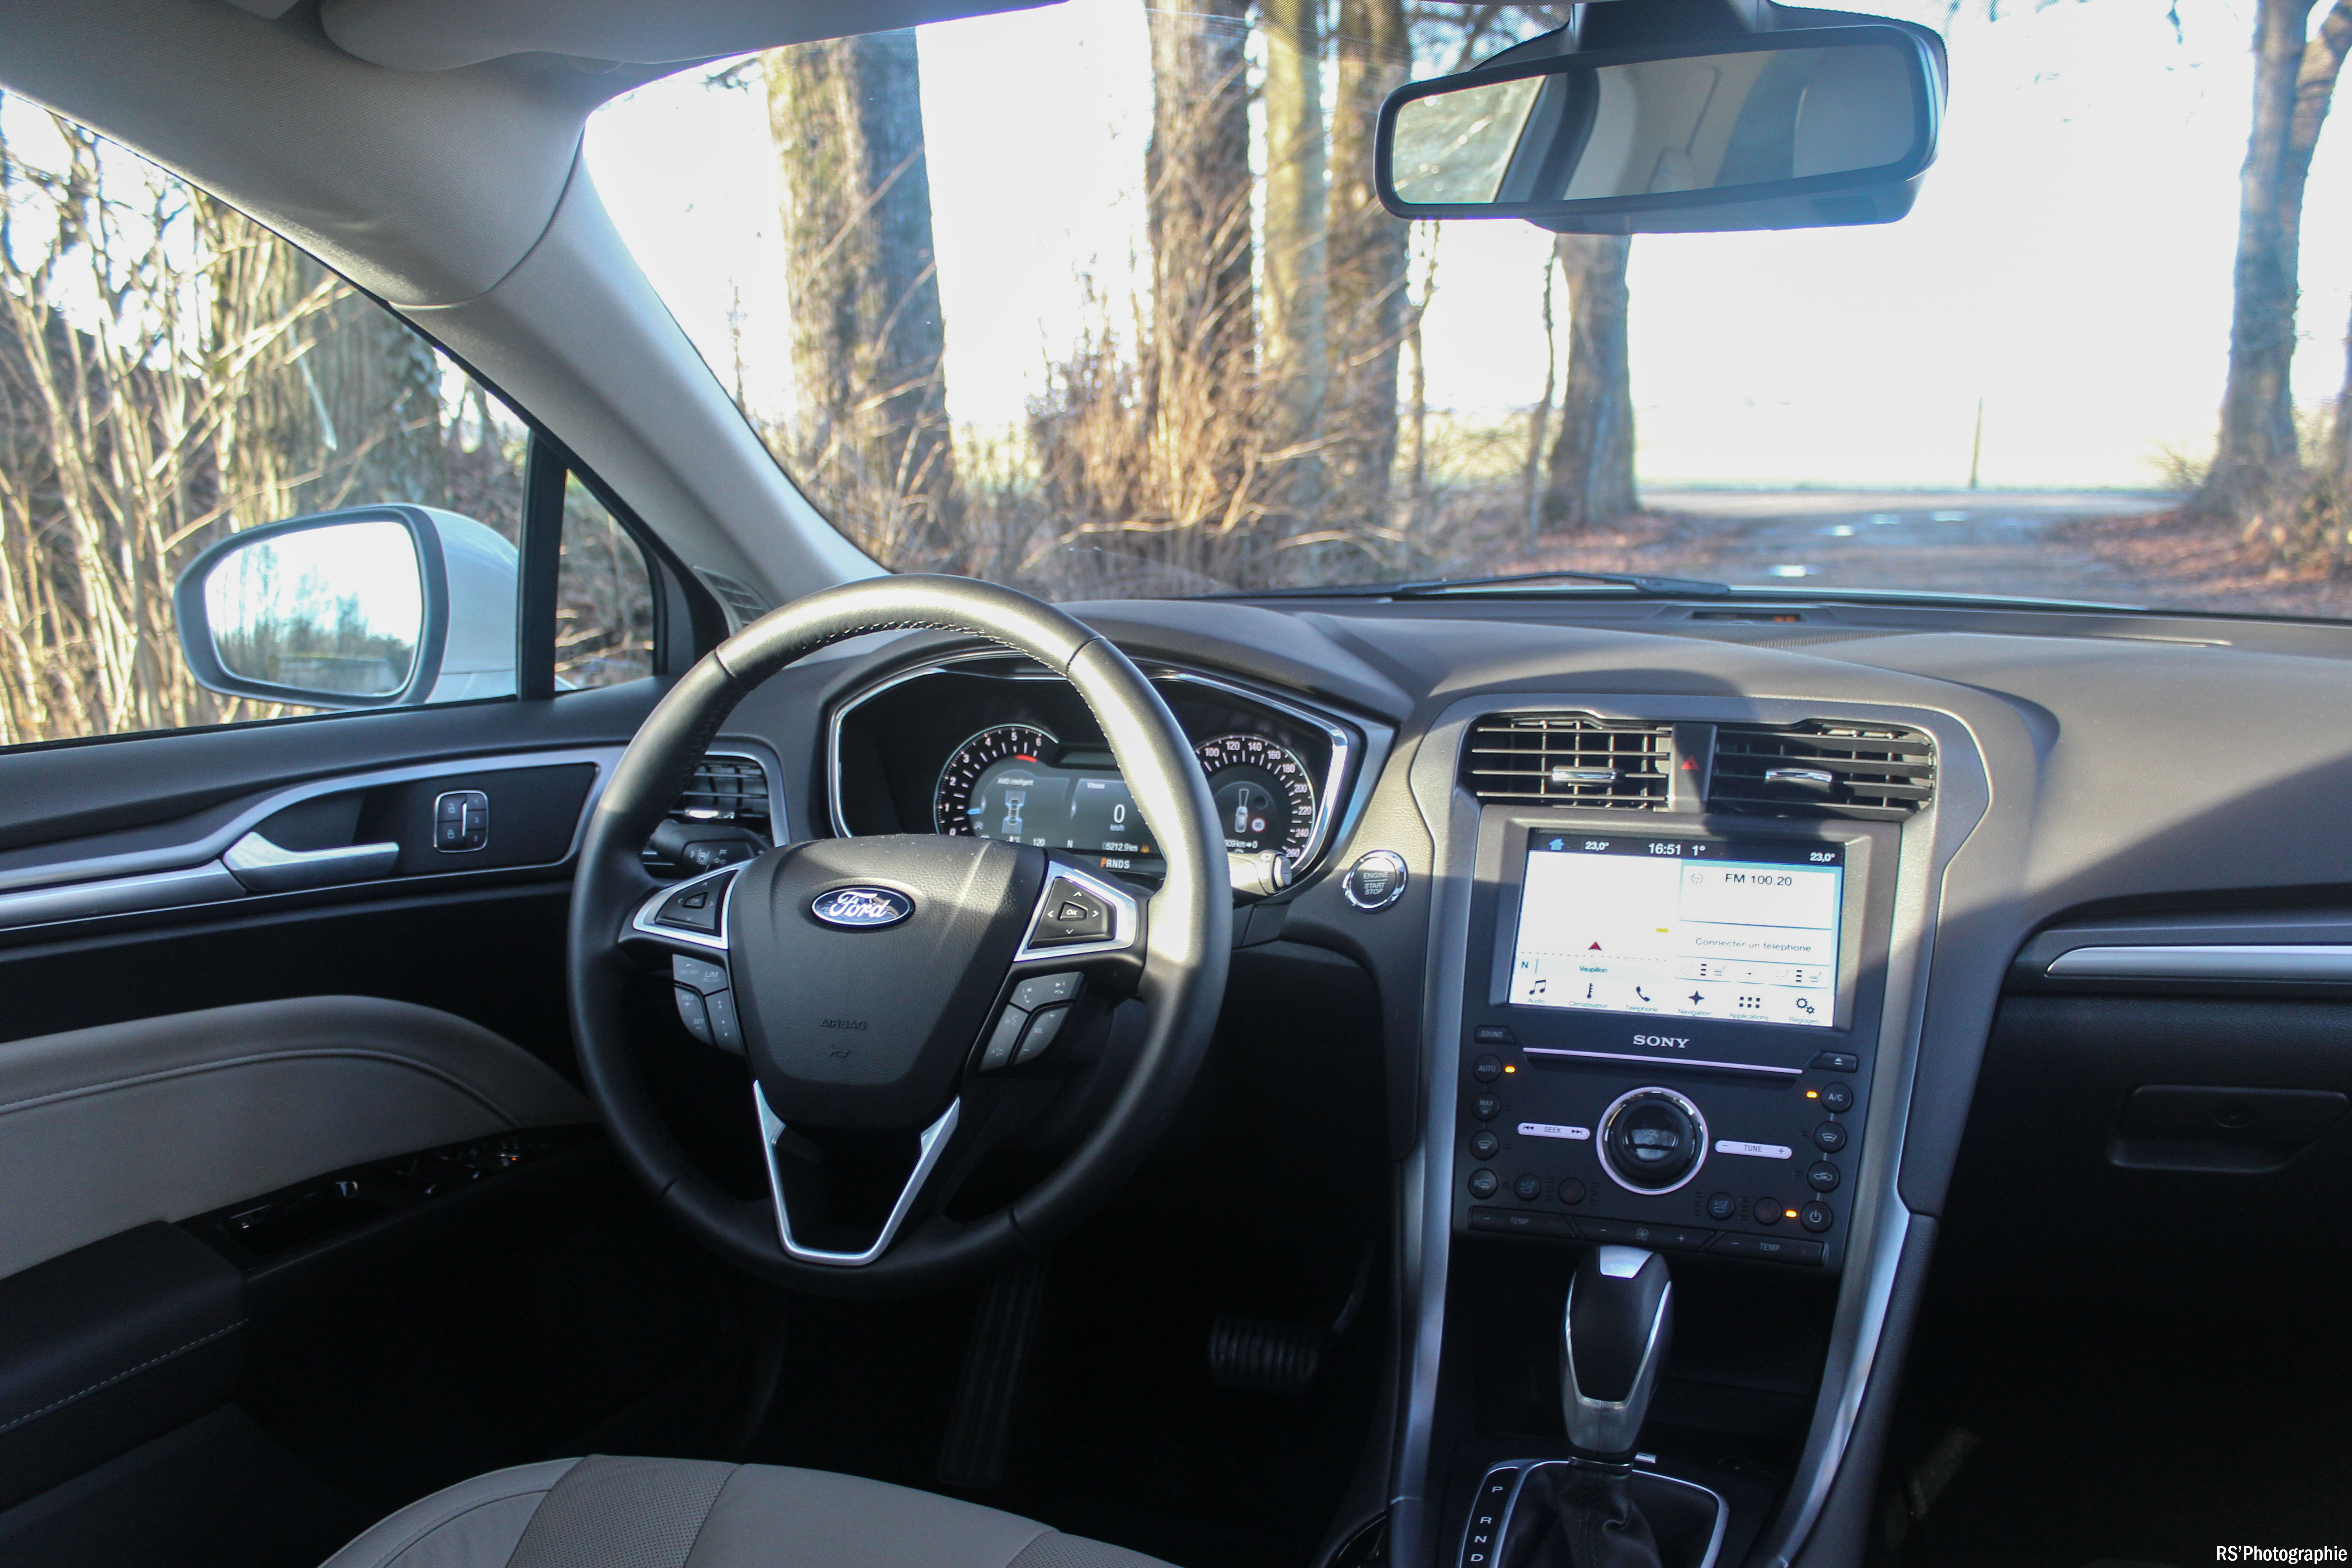 FordMondeoSW18-ford-mondeo-sw-180-intérieur-onboard-arnaud-demasier-rsphotographie